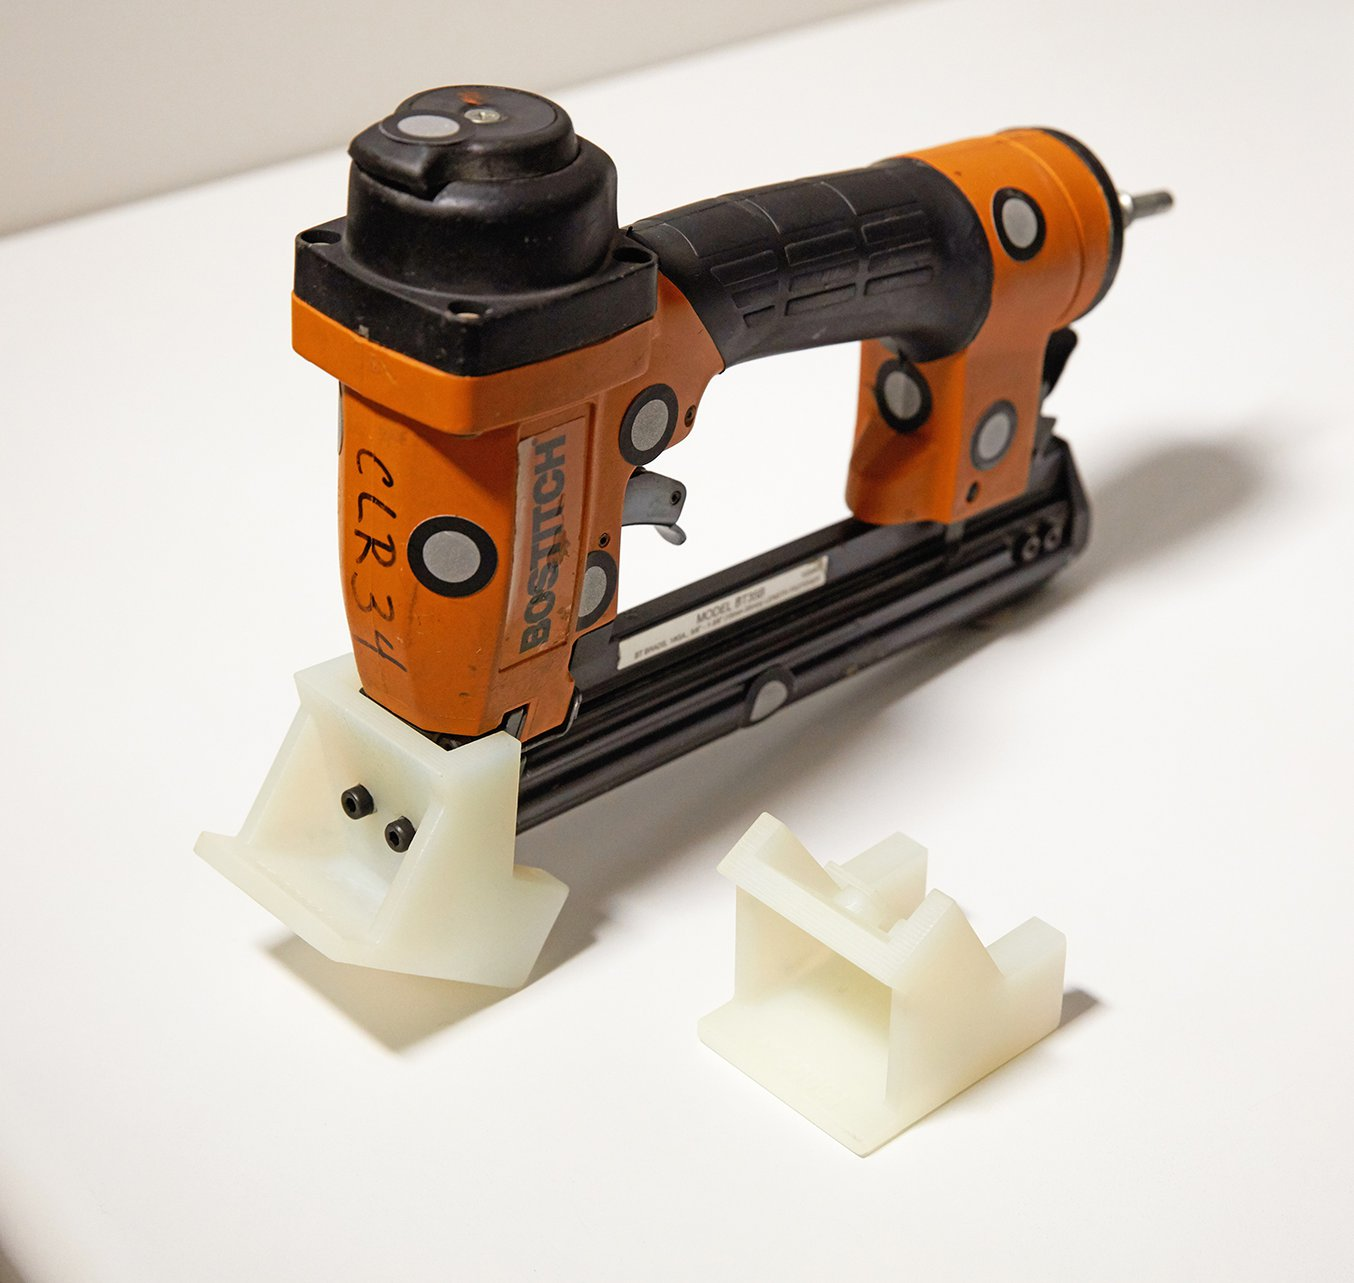 A guide for a pin tack gun 3D printed in Durable Resin.